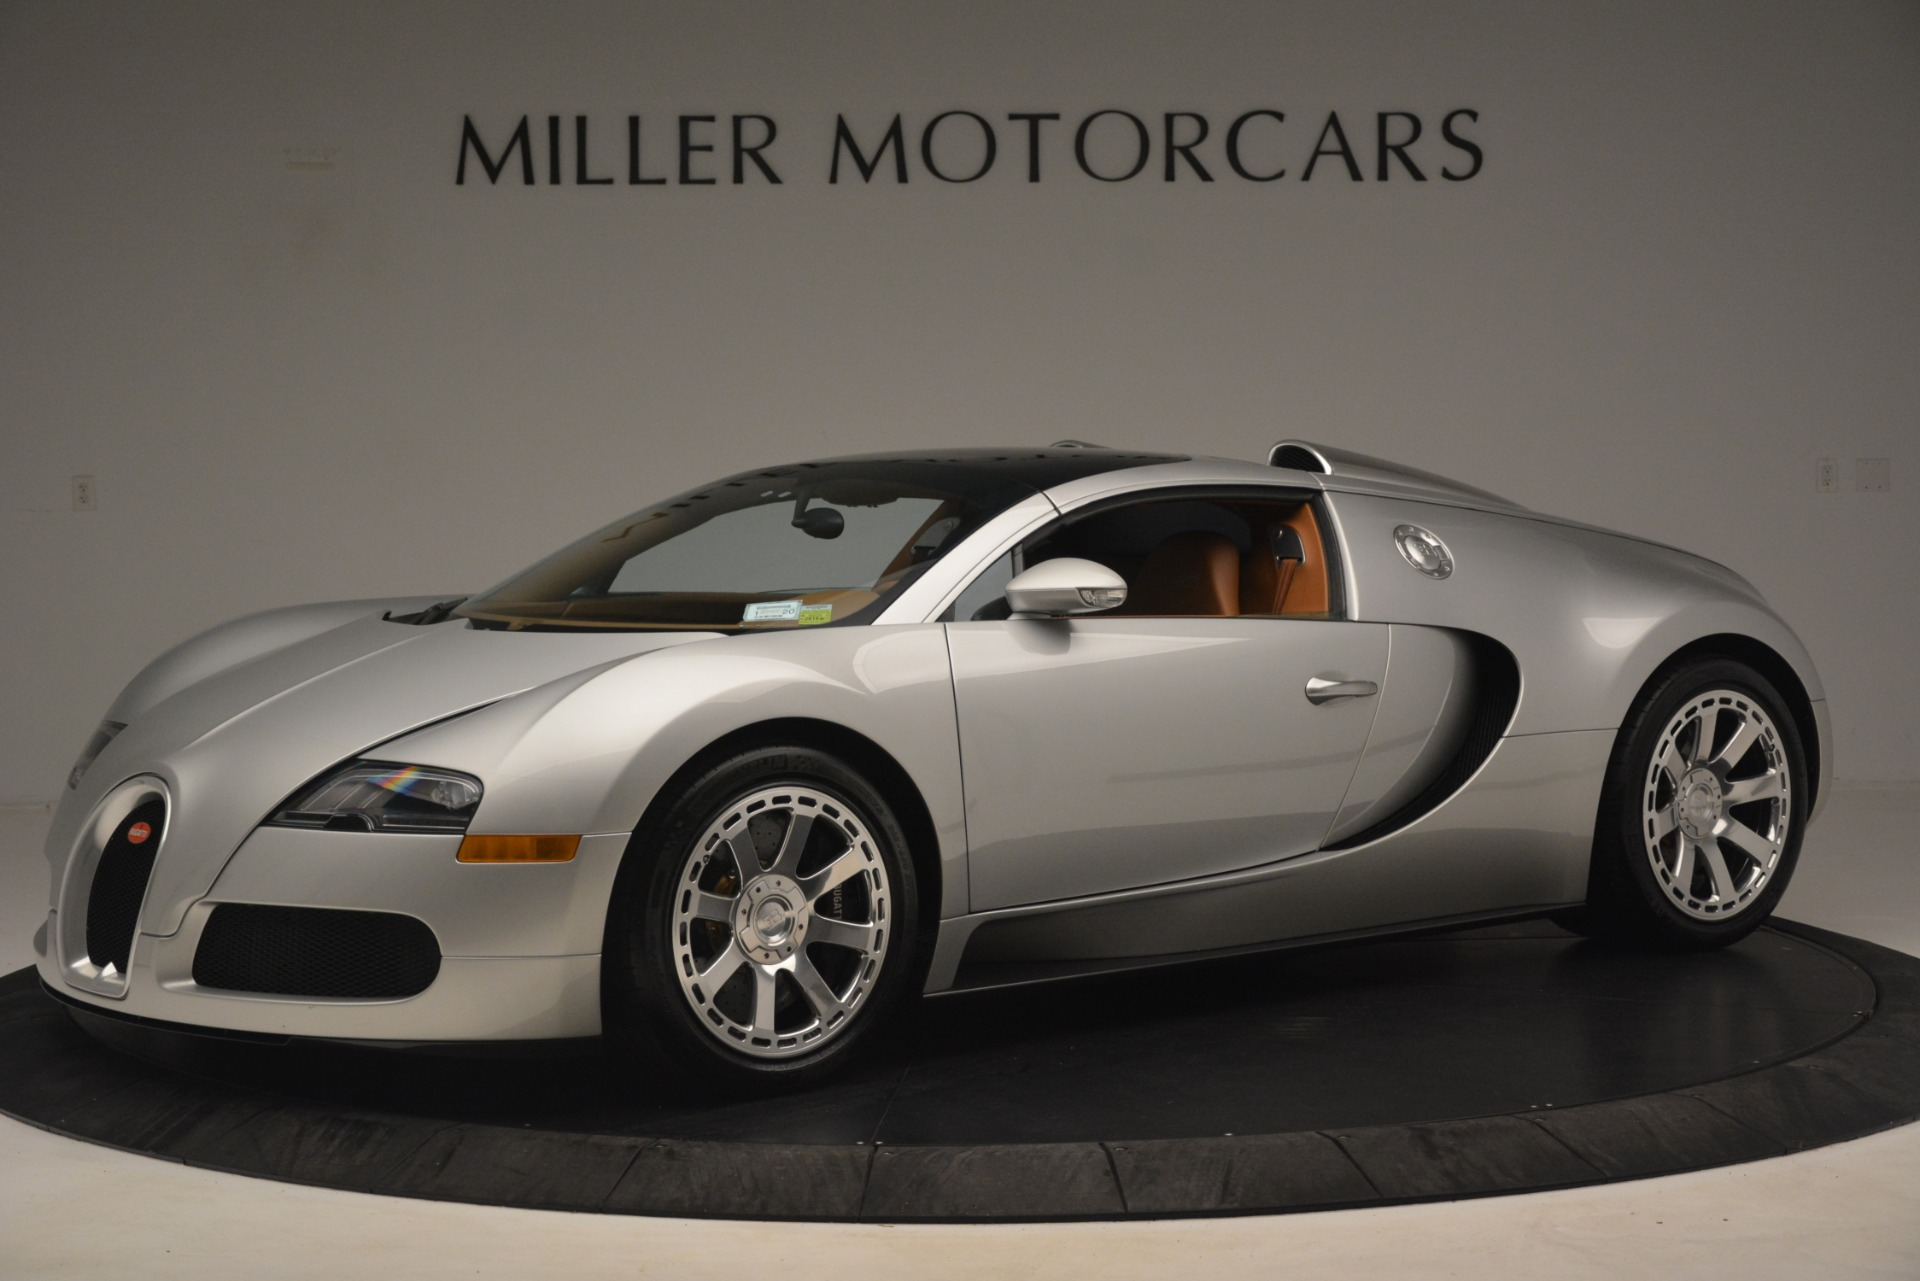 Used 2010 Bugatti Veyron 16.4 Grand Sport For Sale In Westport, CT 3159_p13